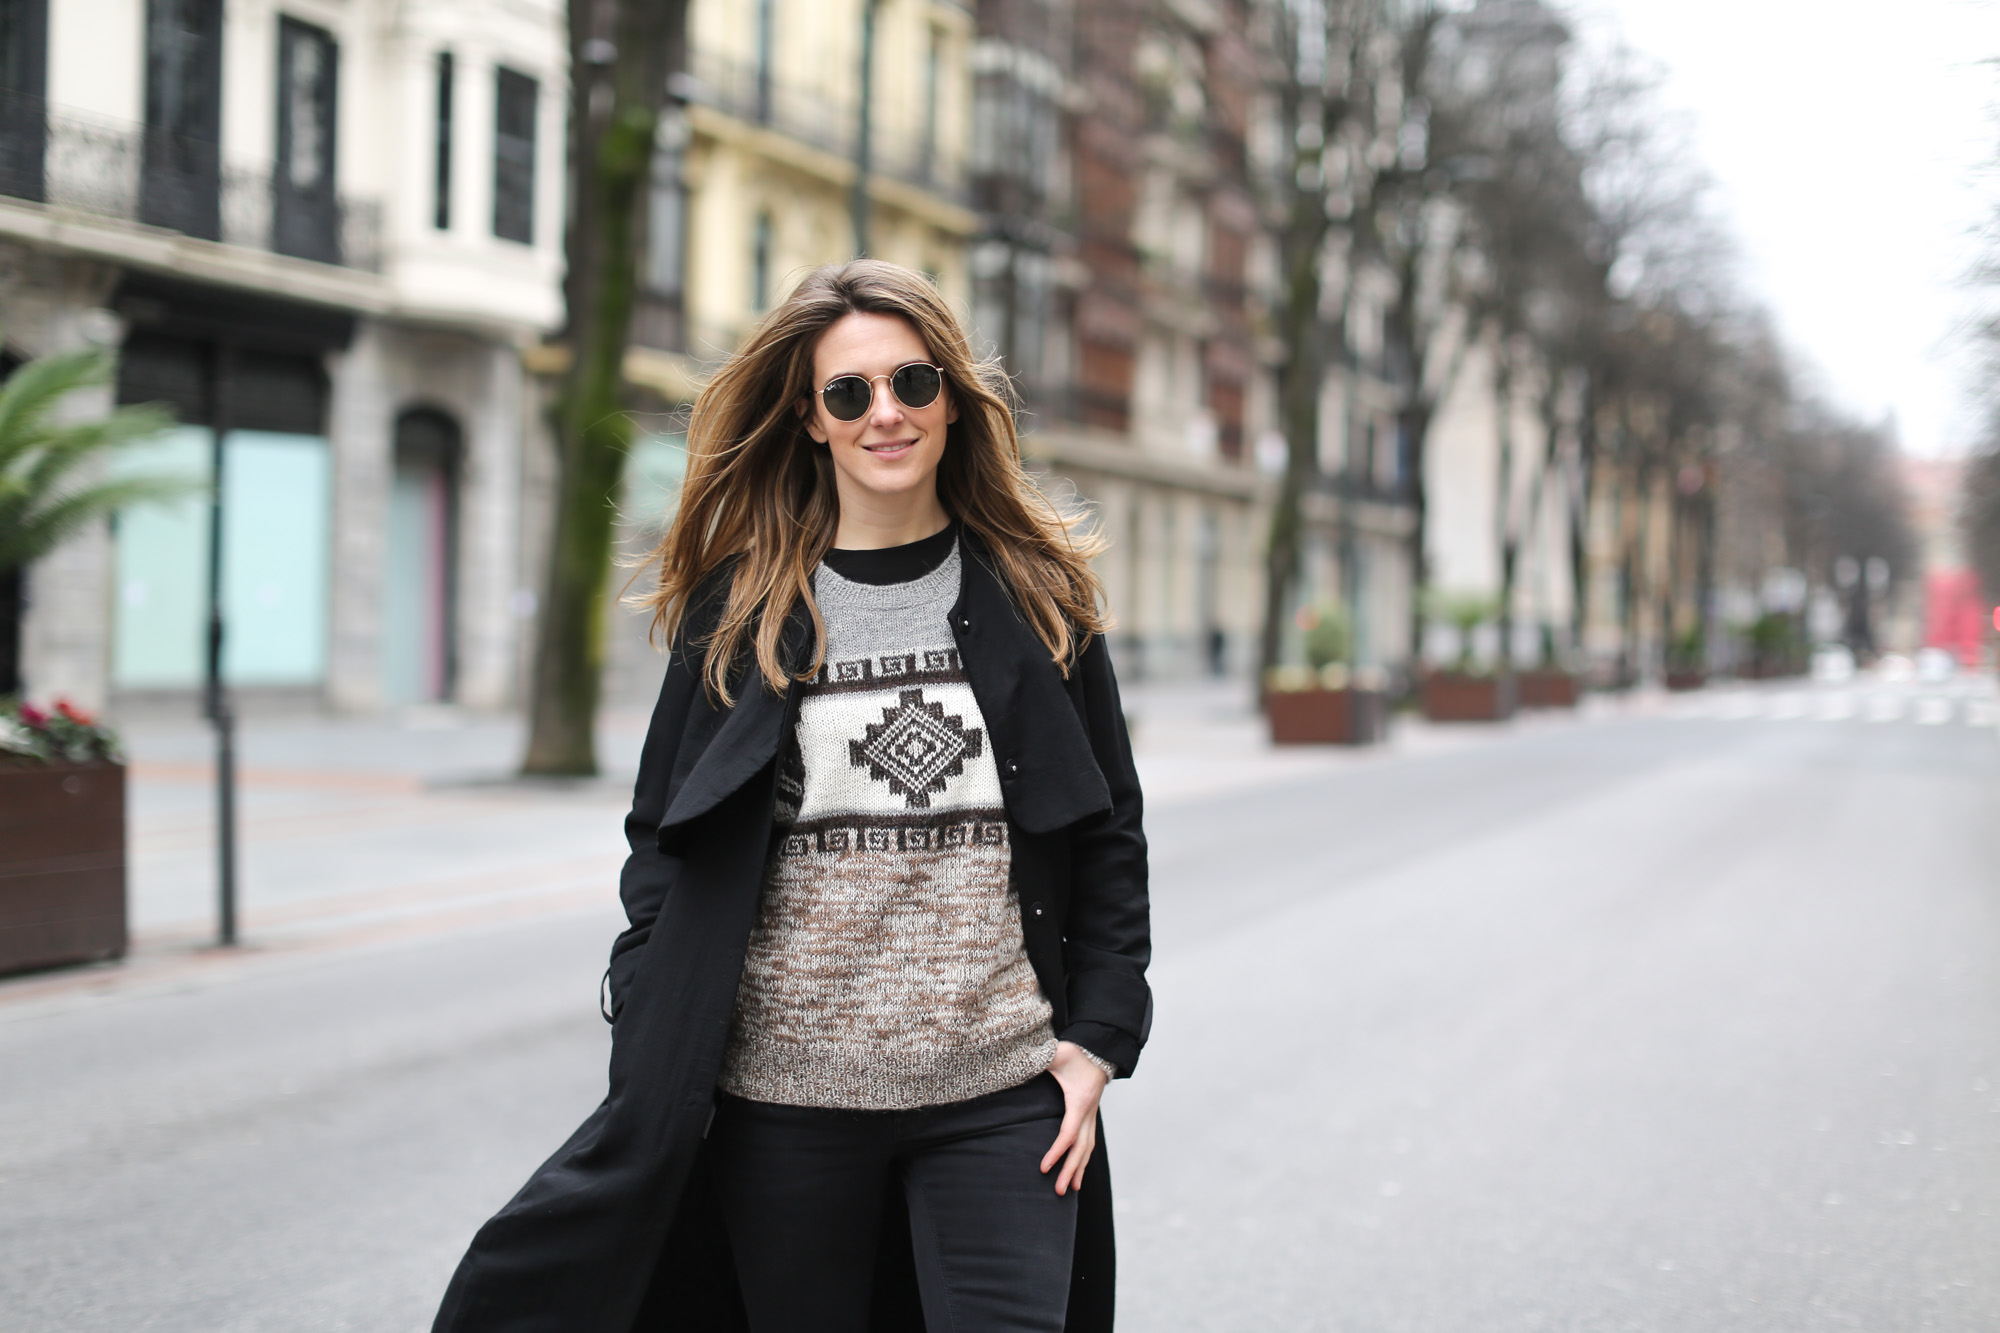 Clochet-streetstyle-isabel-marant-remington-sweater-zara-black-flared-jeans-7